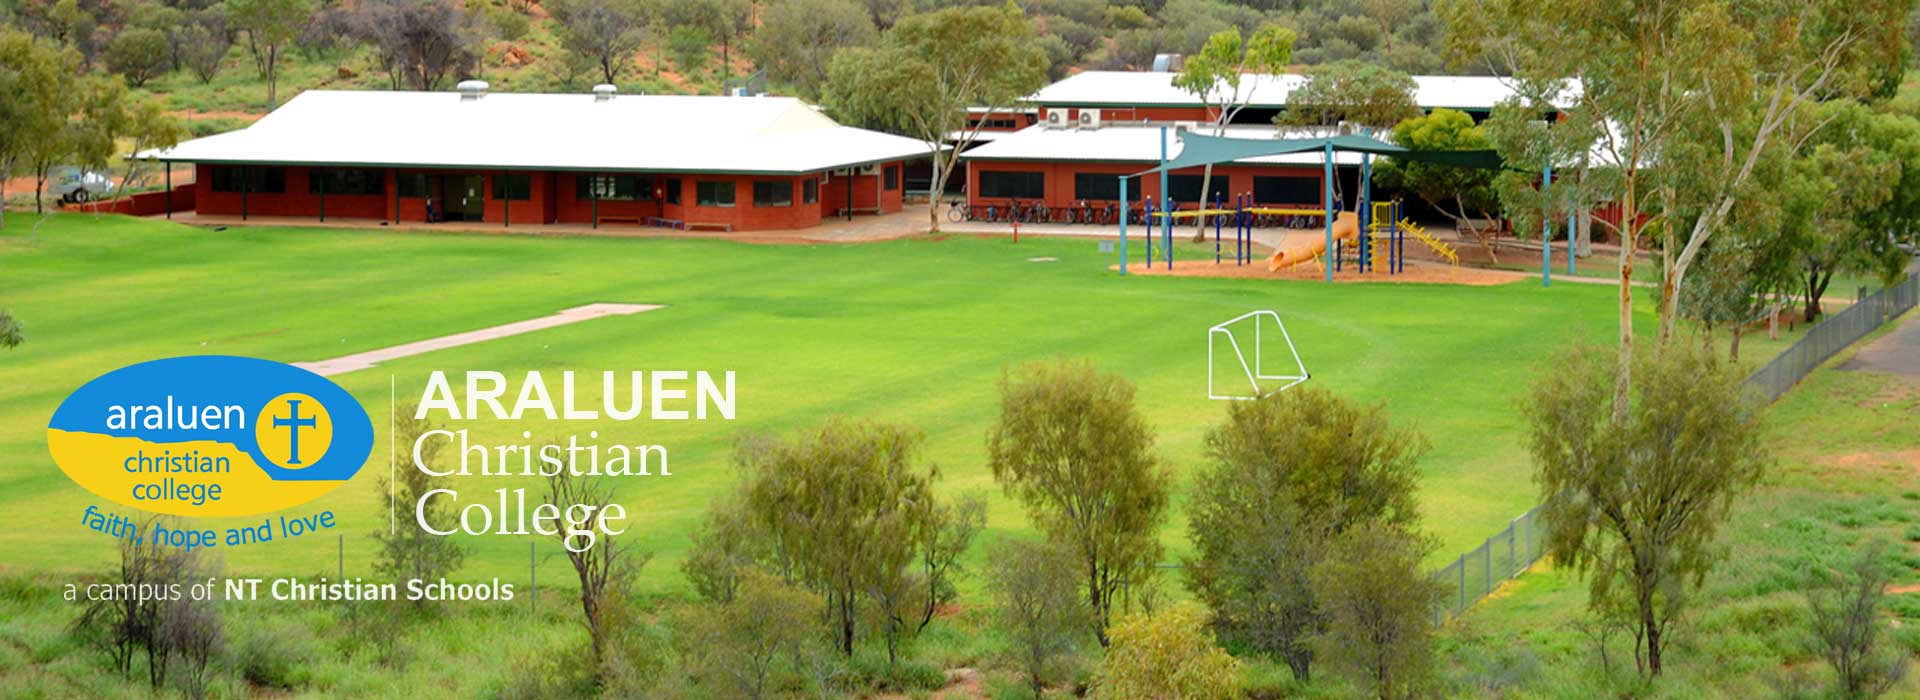 araluen christian college private school in alice springs